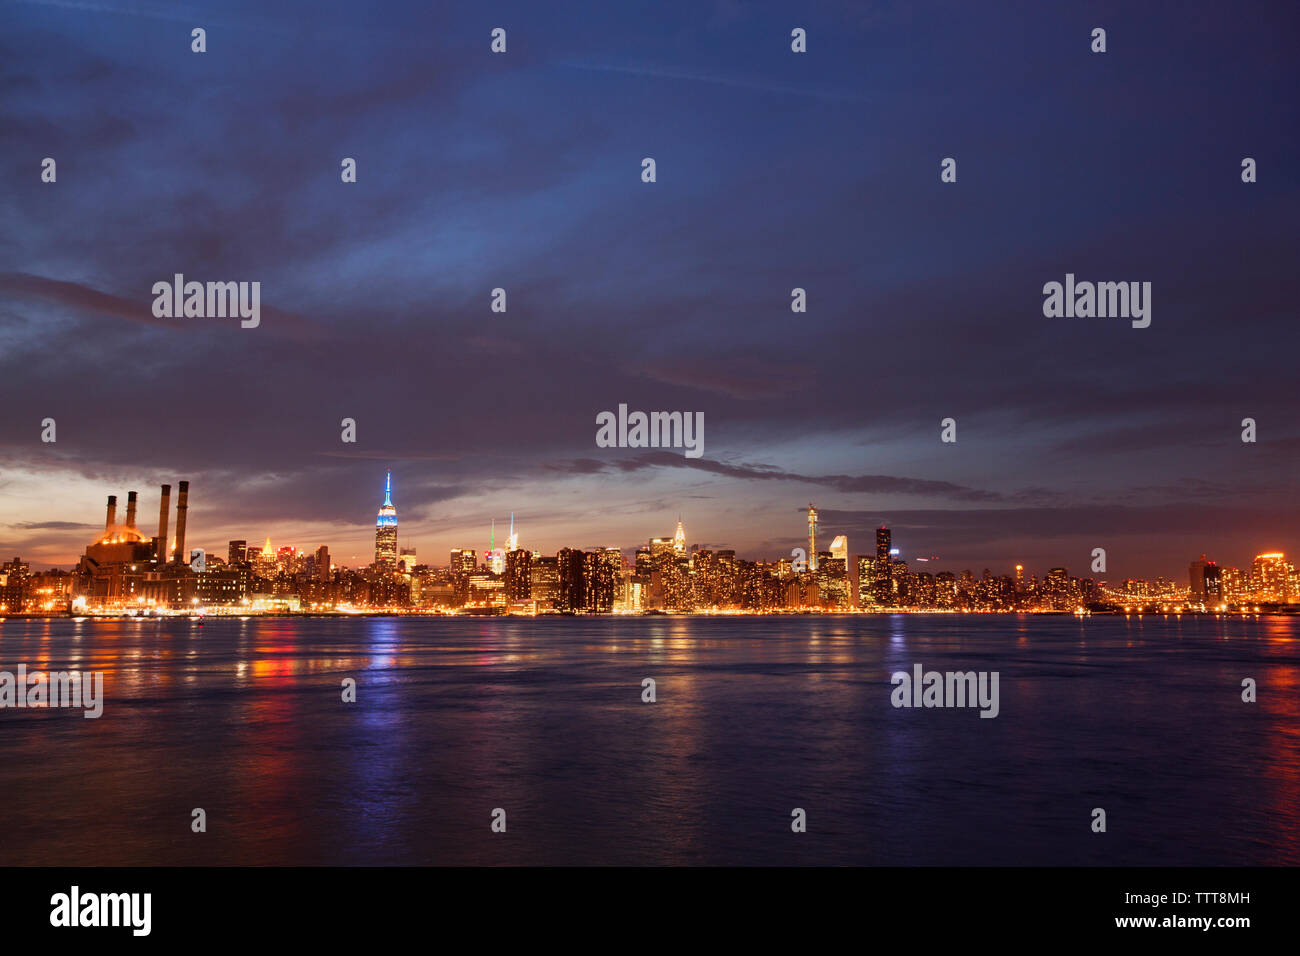 Scenic view of river and illuminated cityscape against cloudy sky at night - Stock Image